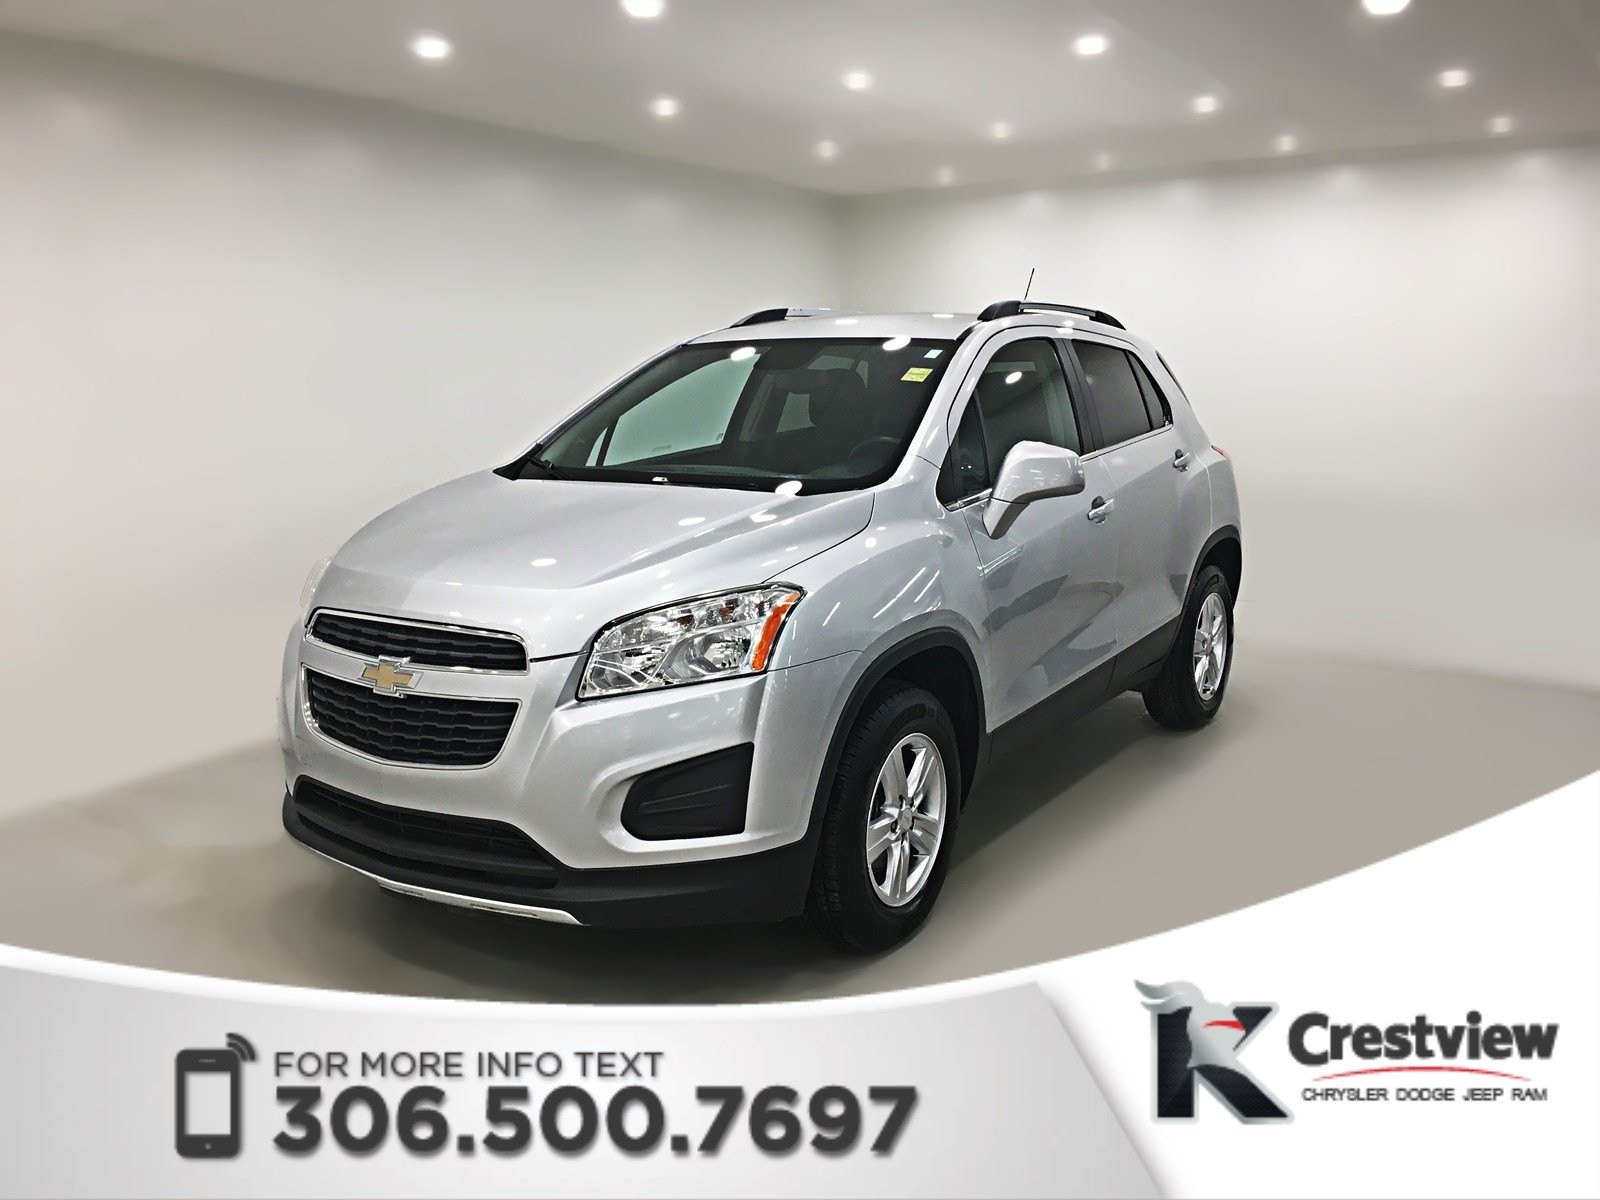 Certified Pre-Owned 2014 Chevrolet Trax LT AWD | Turbocharged